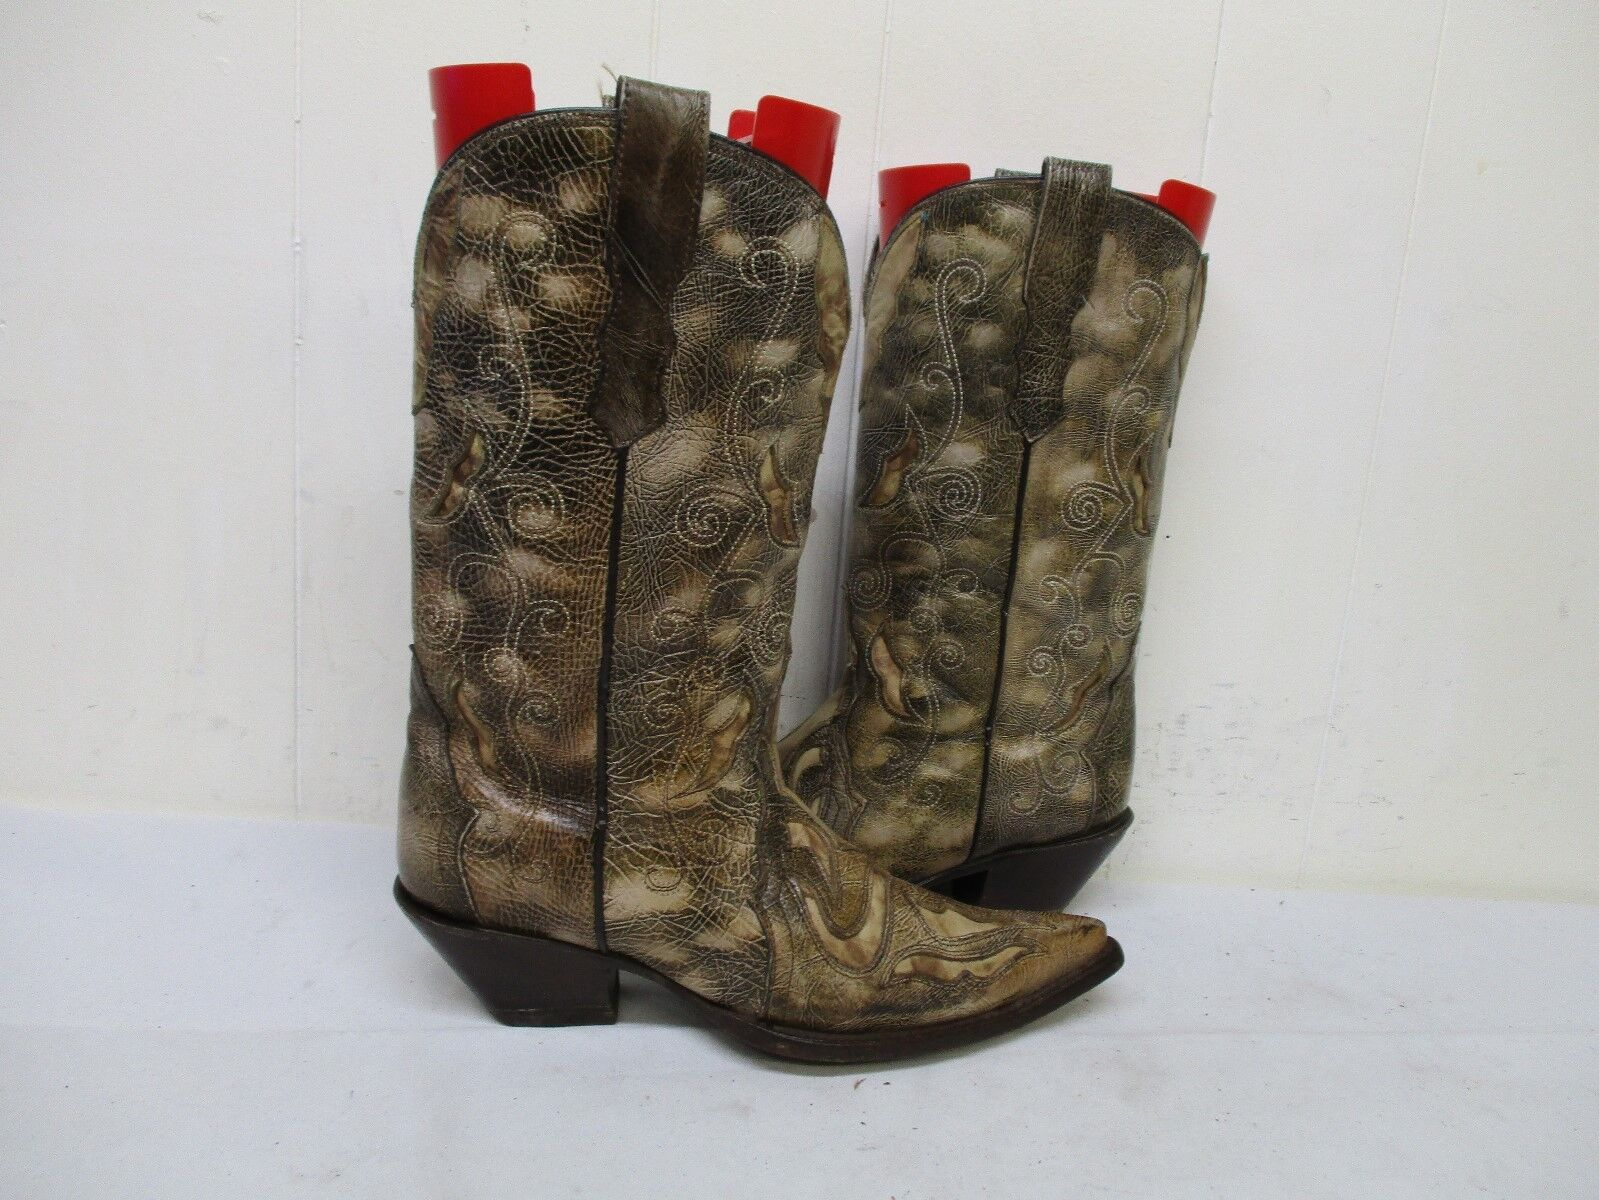 CORRAL Distressed Leather Inlay Cowboy stivali donna Dimensione 7.5 M Style R2300